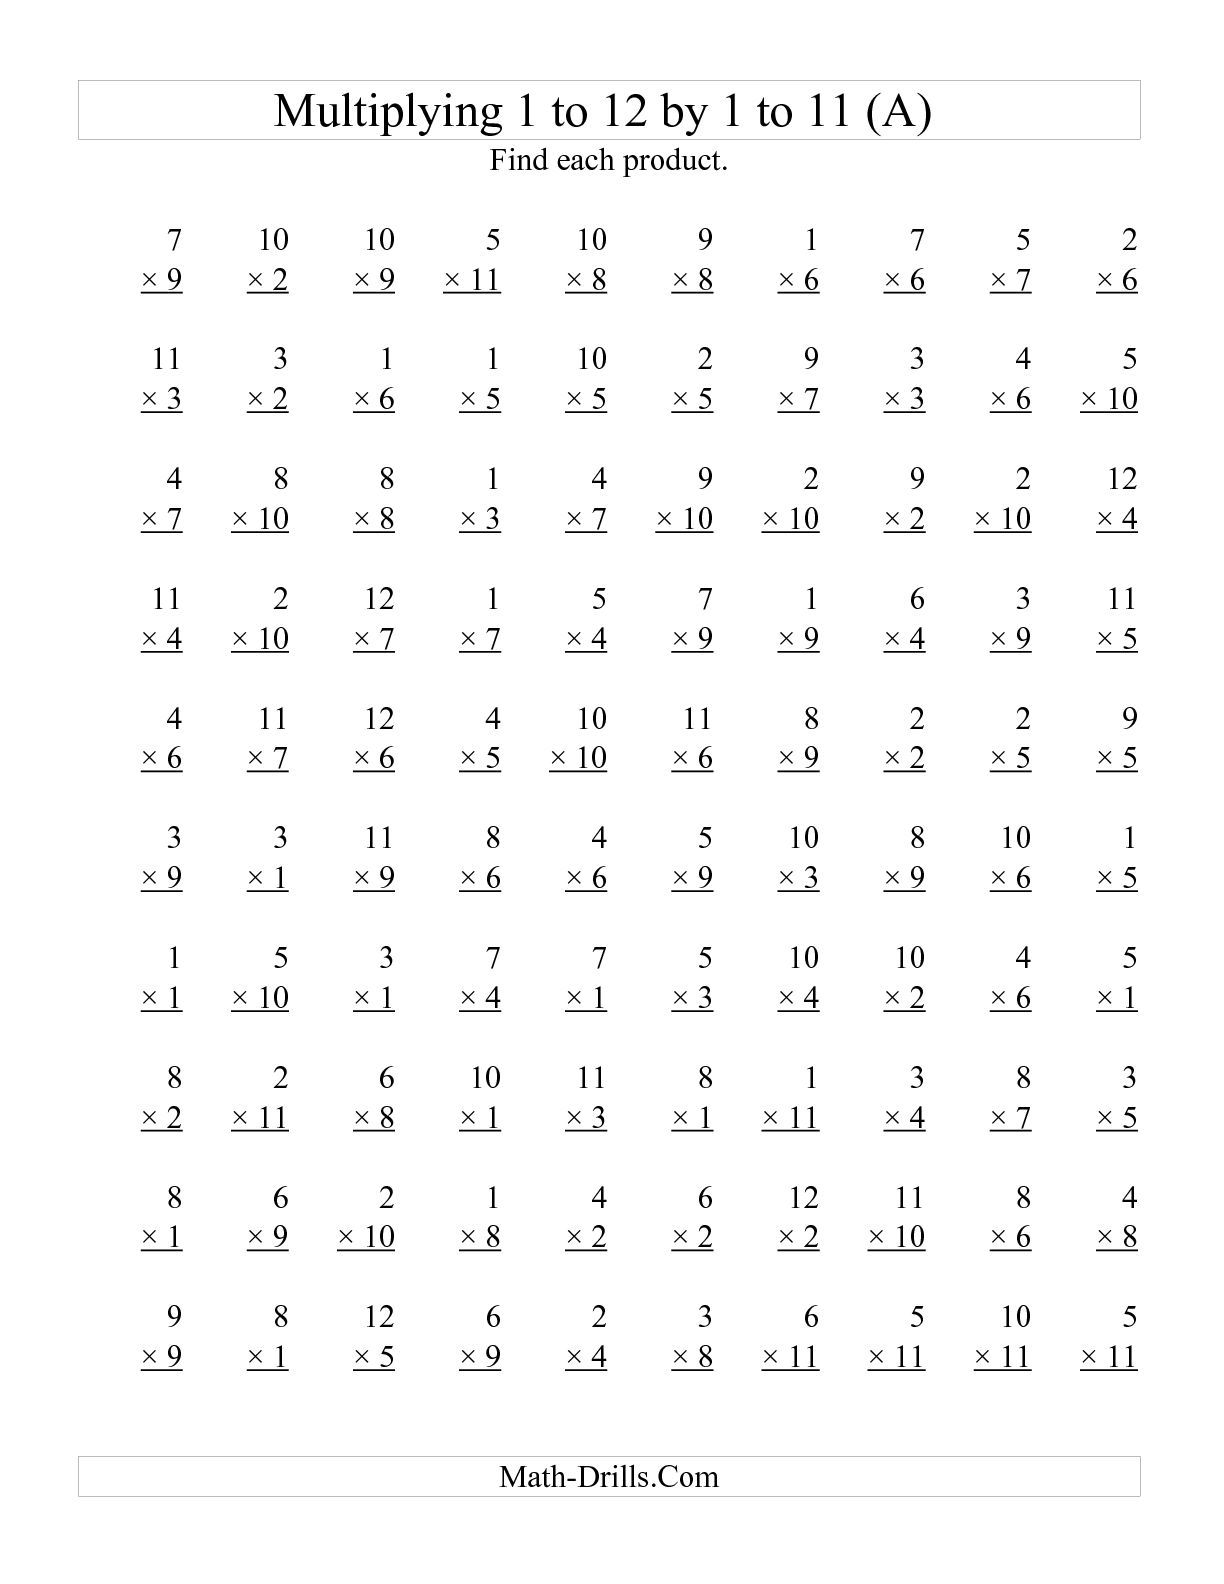 the  vertical questions  multiplying  to  by  to  a  the  vertical questions  multiplying  to  by  to  a math  worksheet from the multiplication worksheet page at mathdrillscom